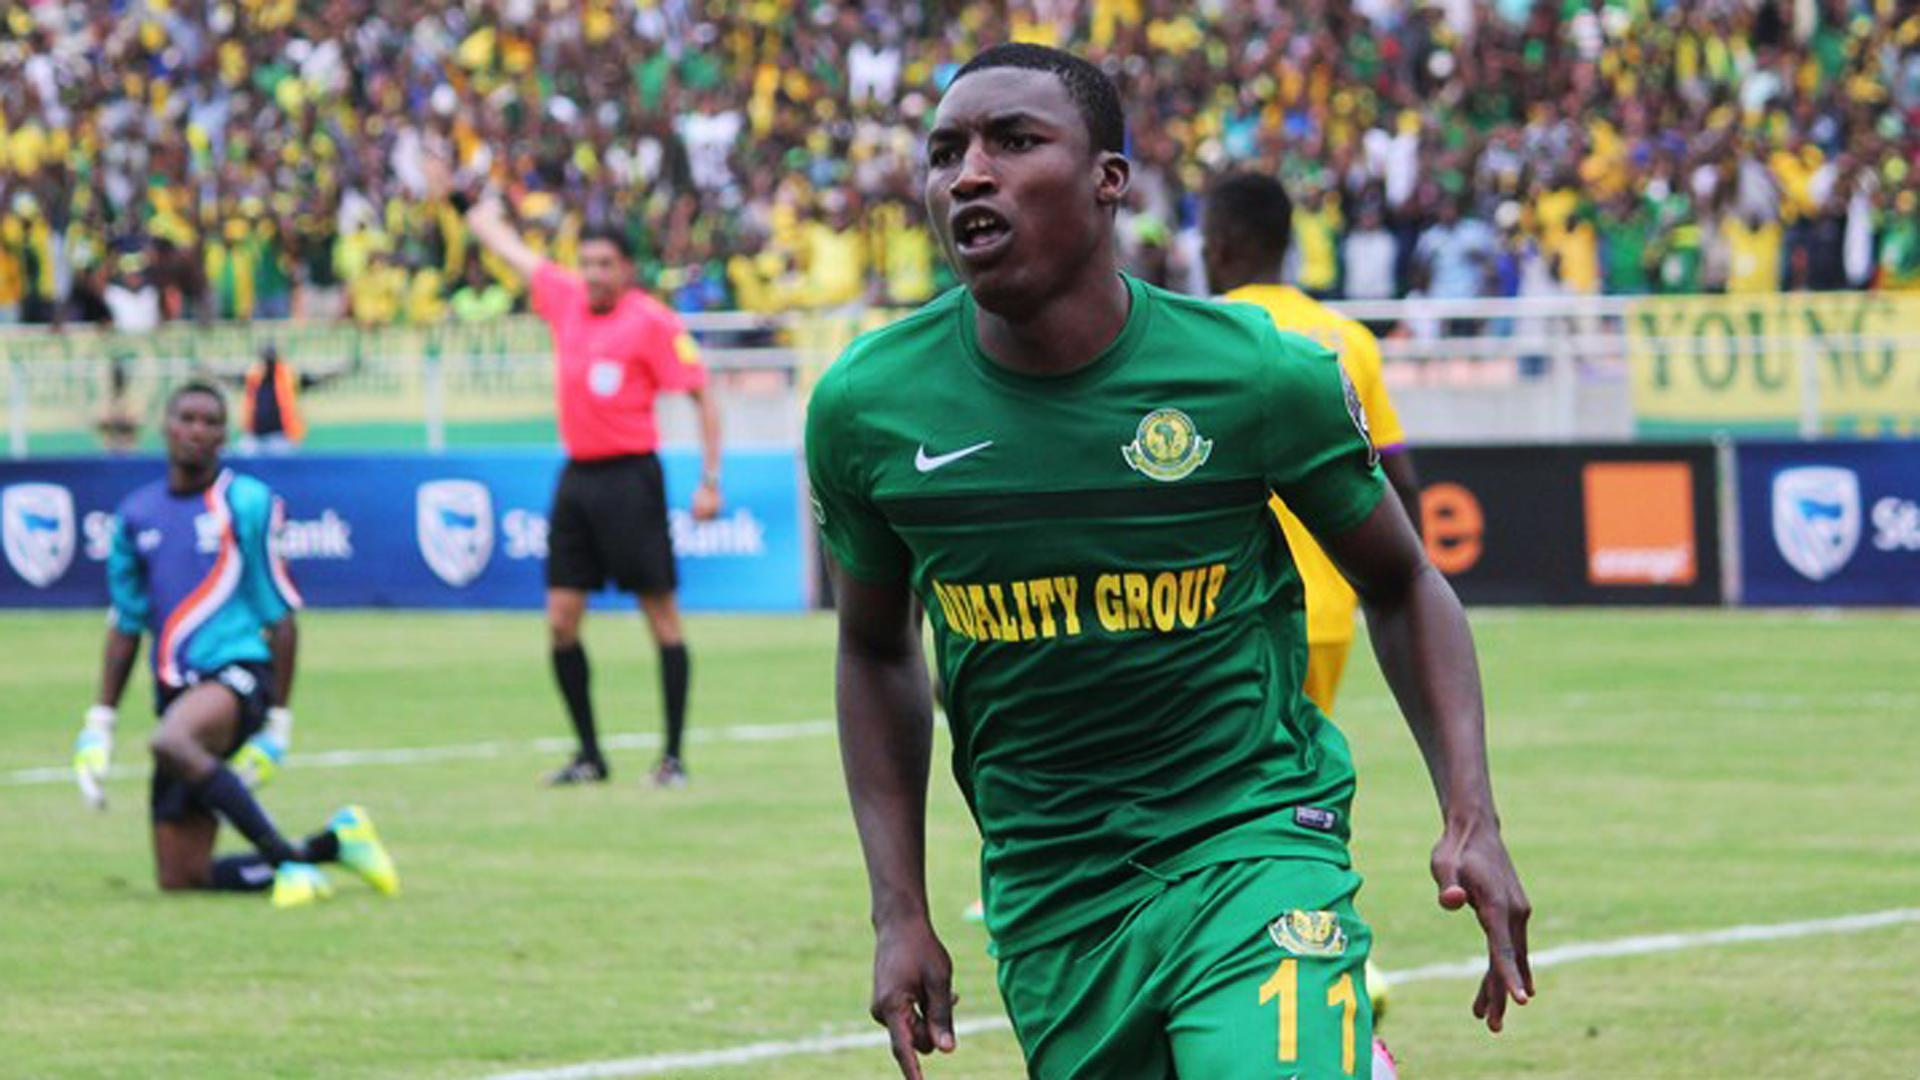 Yanga could miss Five Key players for Mwadui tie